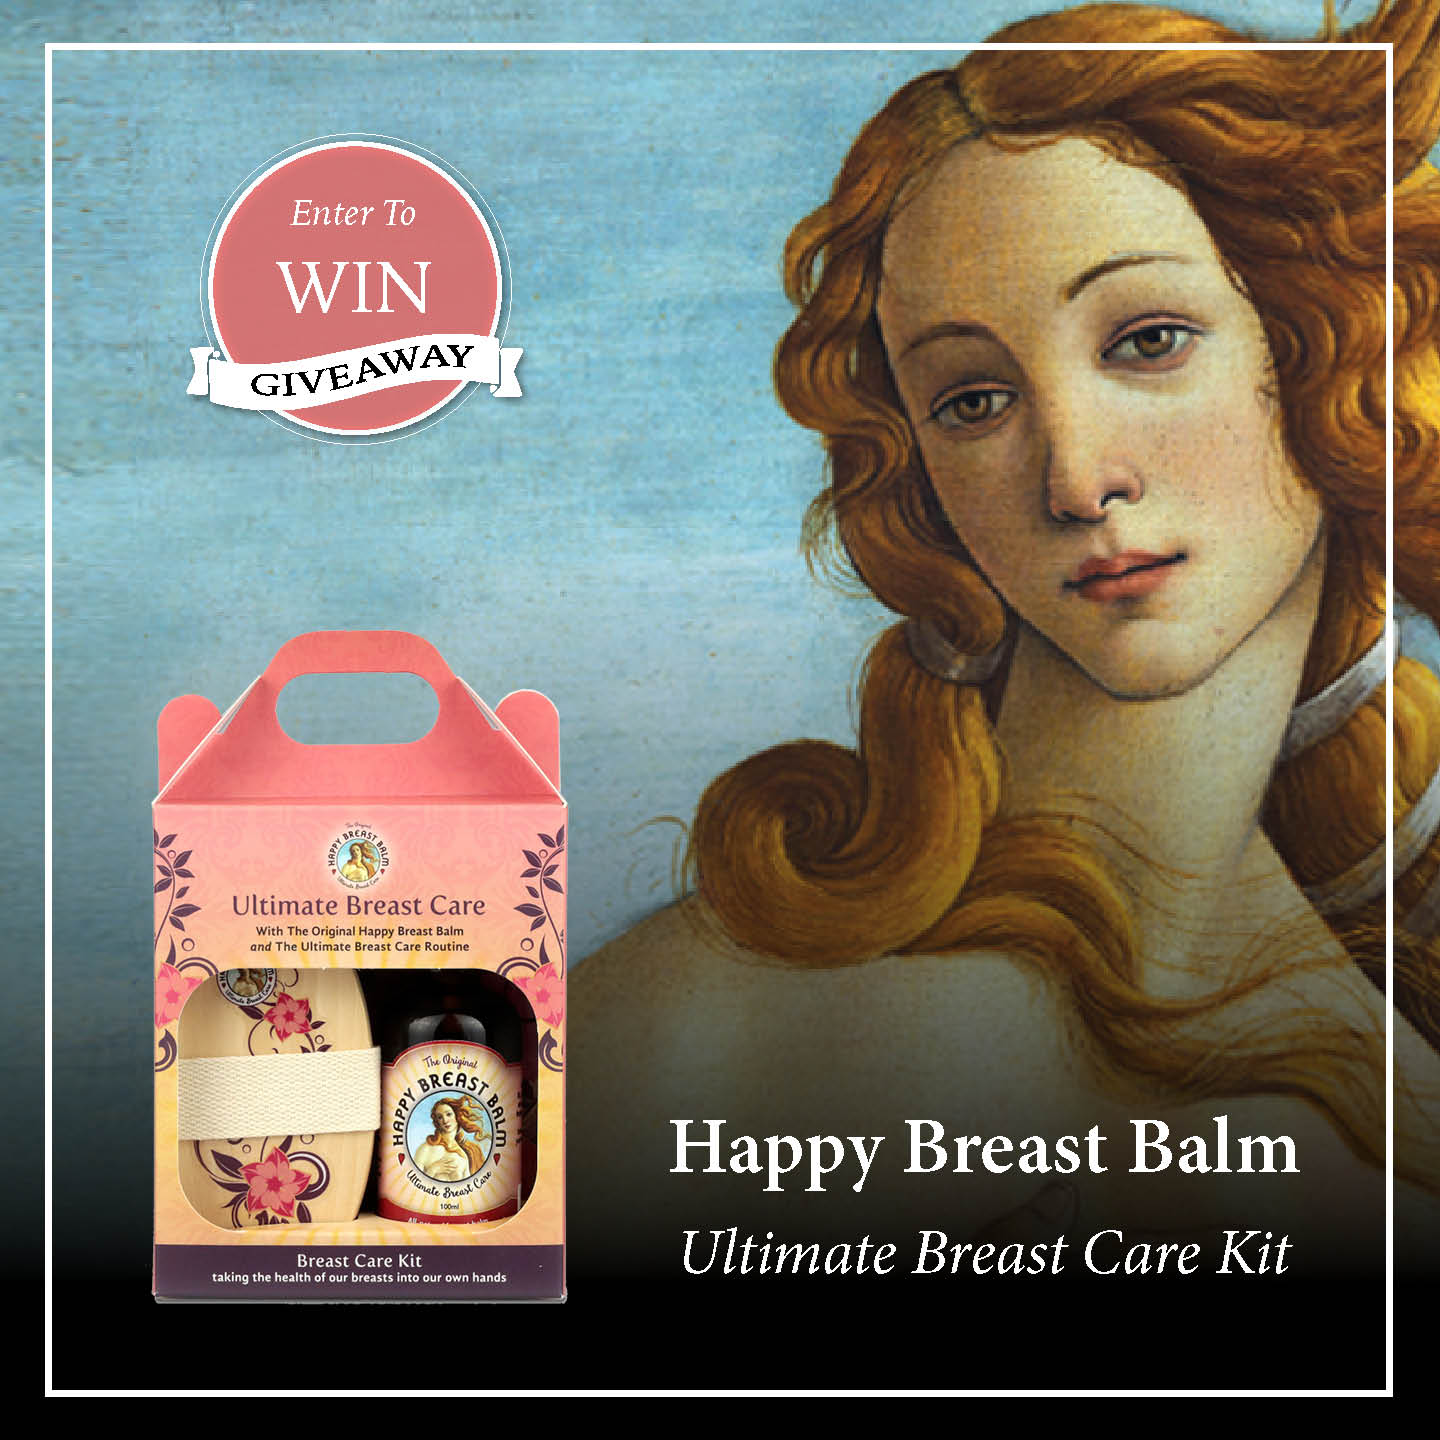 happy breast balm; breast cancer awareness; breast care